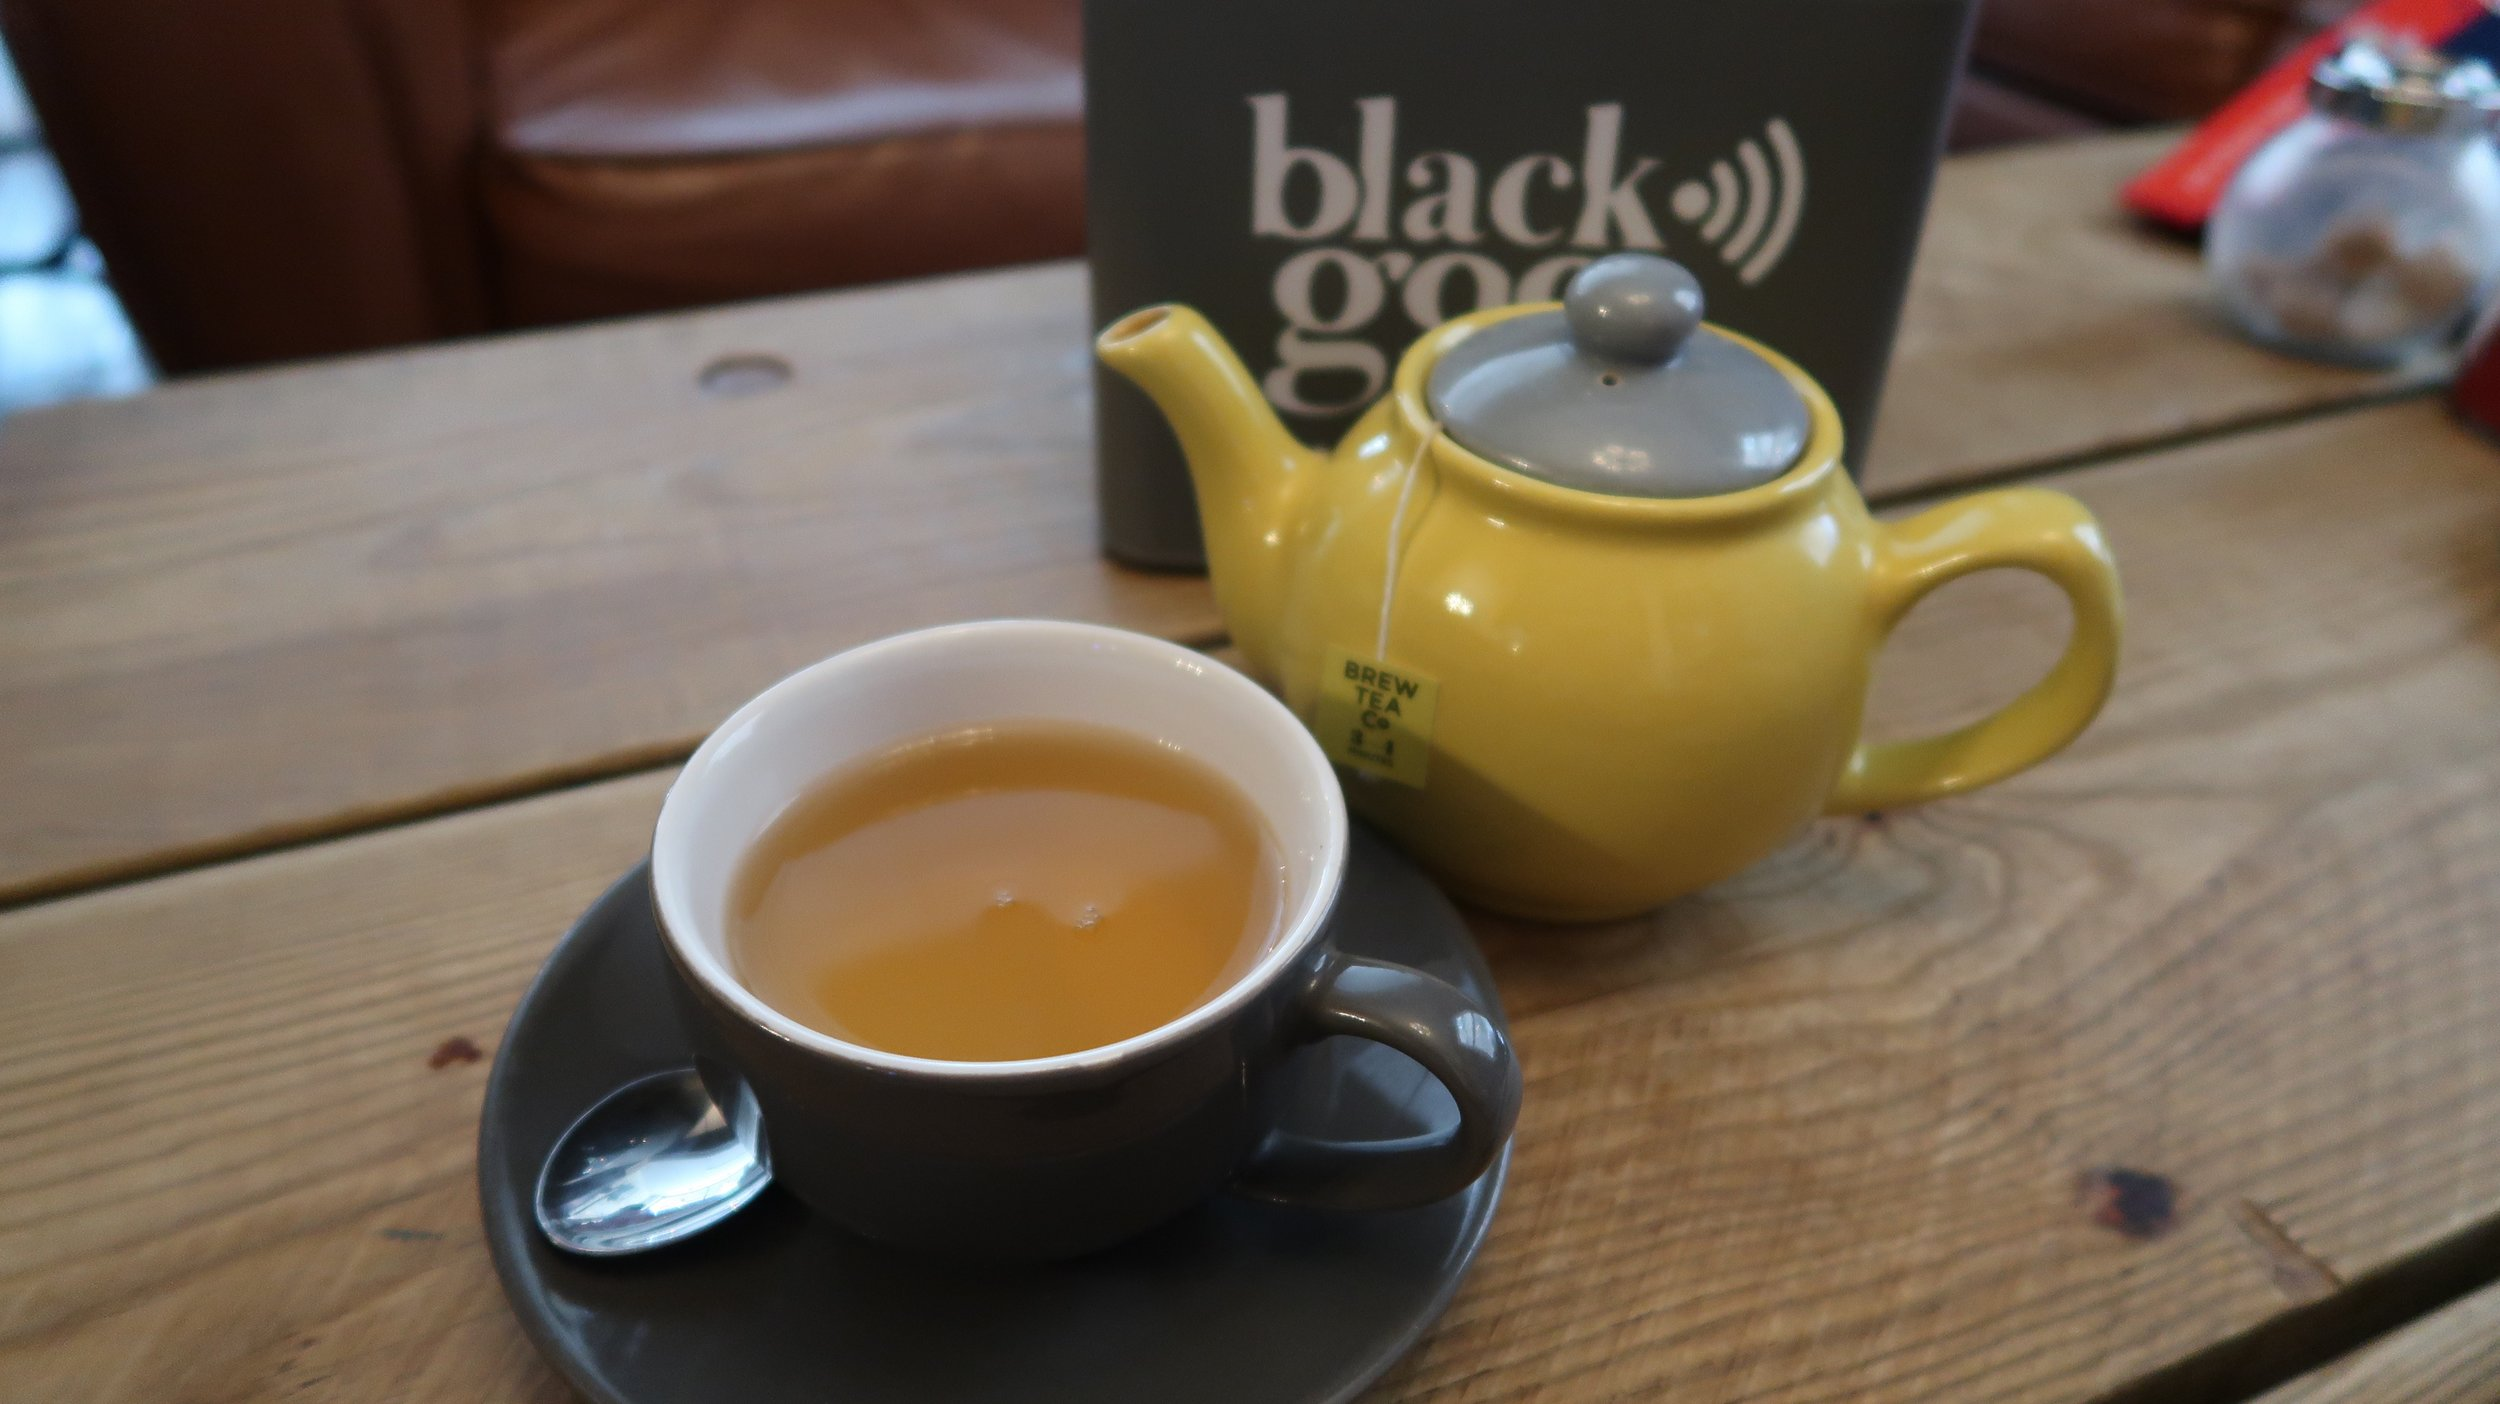 Peppermint tea can be a great option at coffee shops when you don't fancy another flat white!